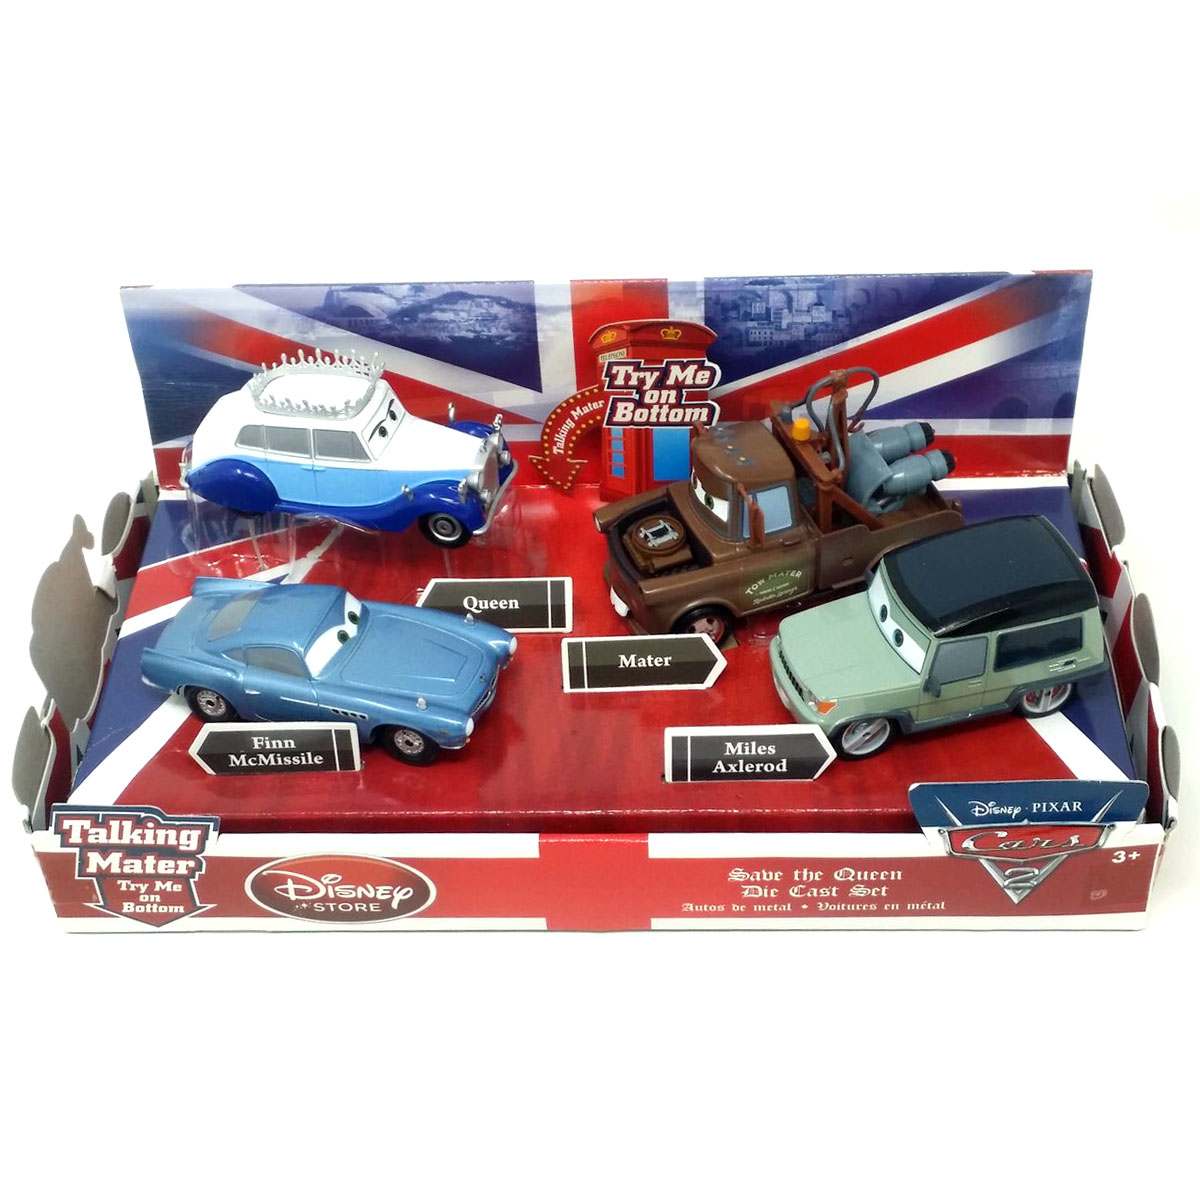 Disney Store Cars 2 Save The Queen Die Cast Set with Talking Mater and Finn McMissile, (OPEN BOX)